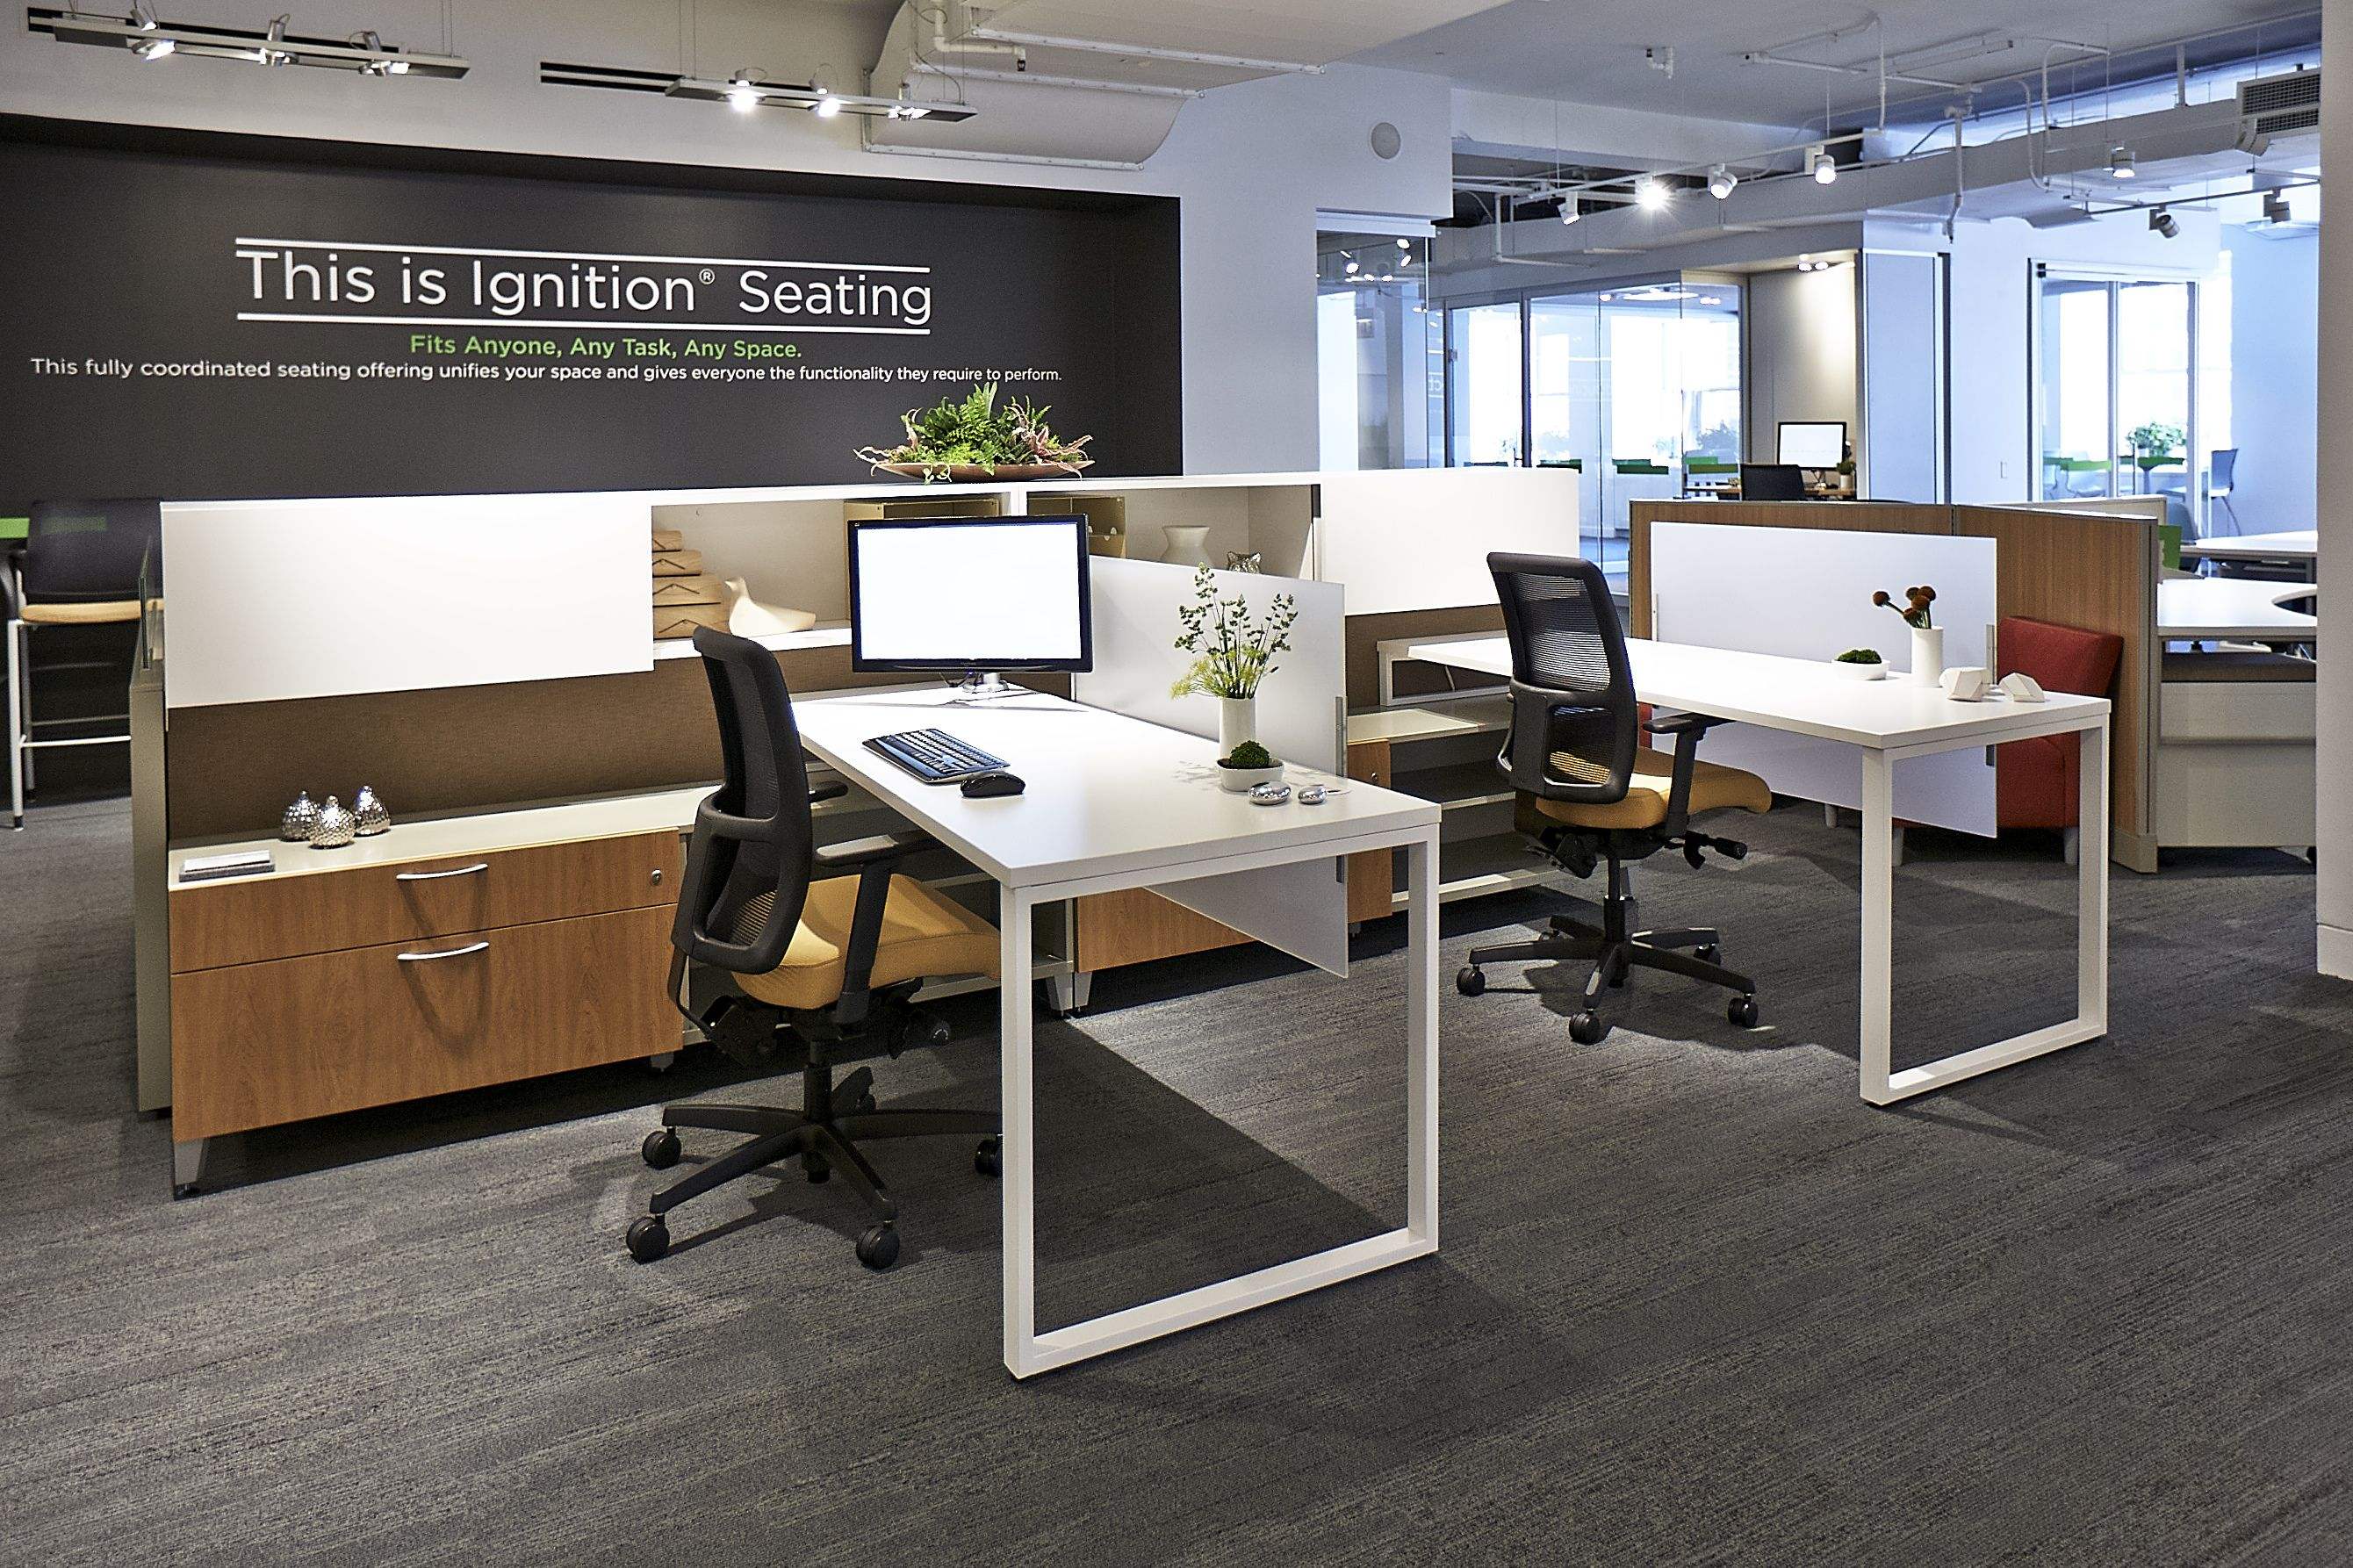 Ergonomic Chair Jakarta Steel Modern Hon Neocon 2014 Showroom Suite 1130 Merchandise Mart